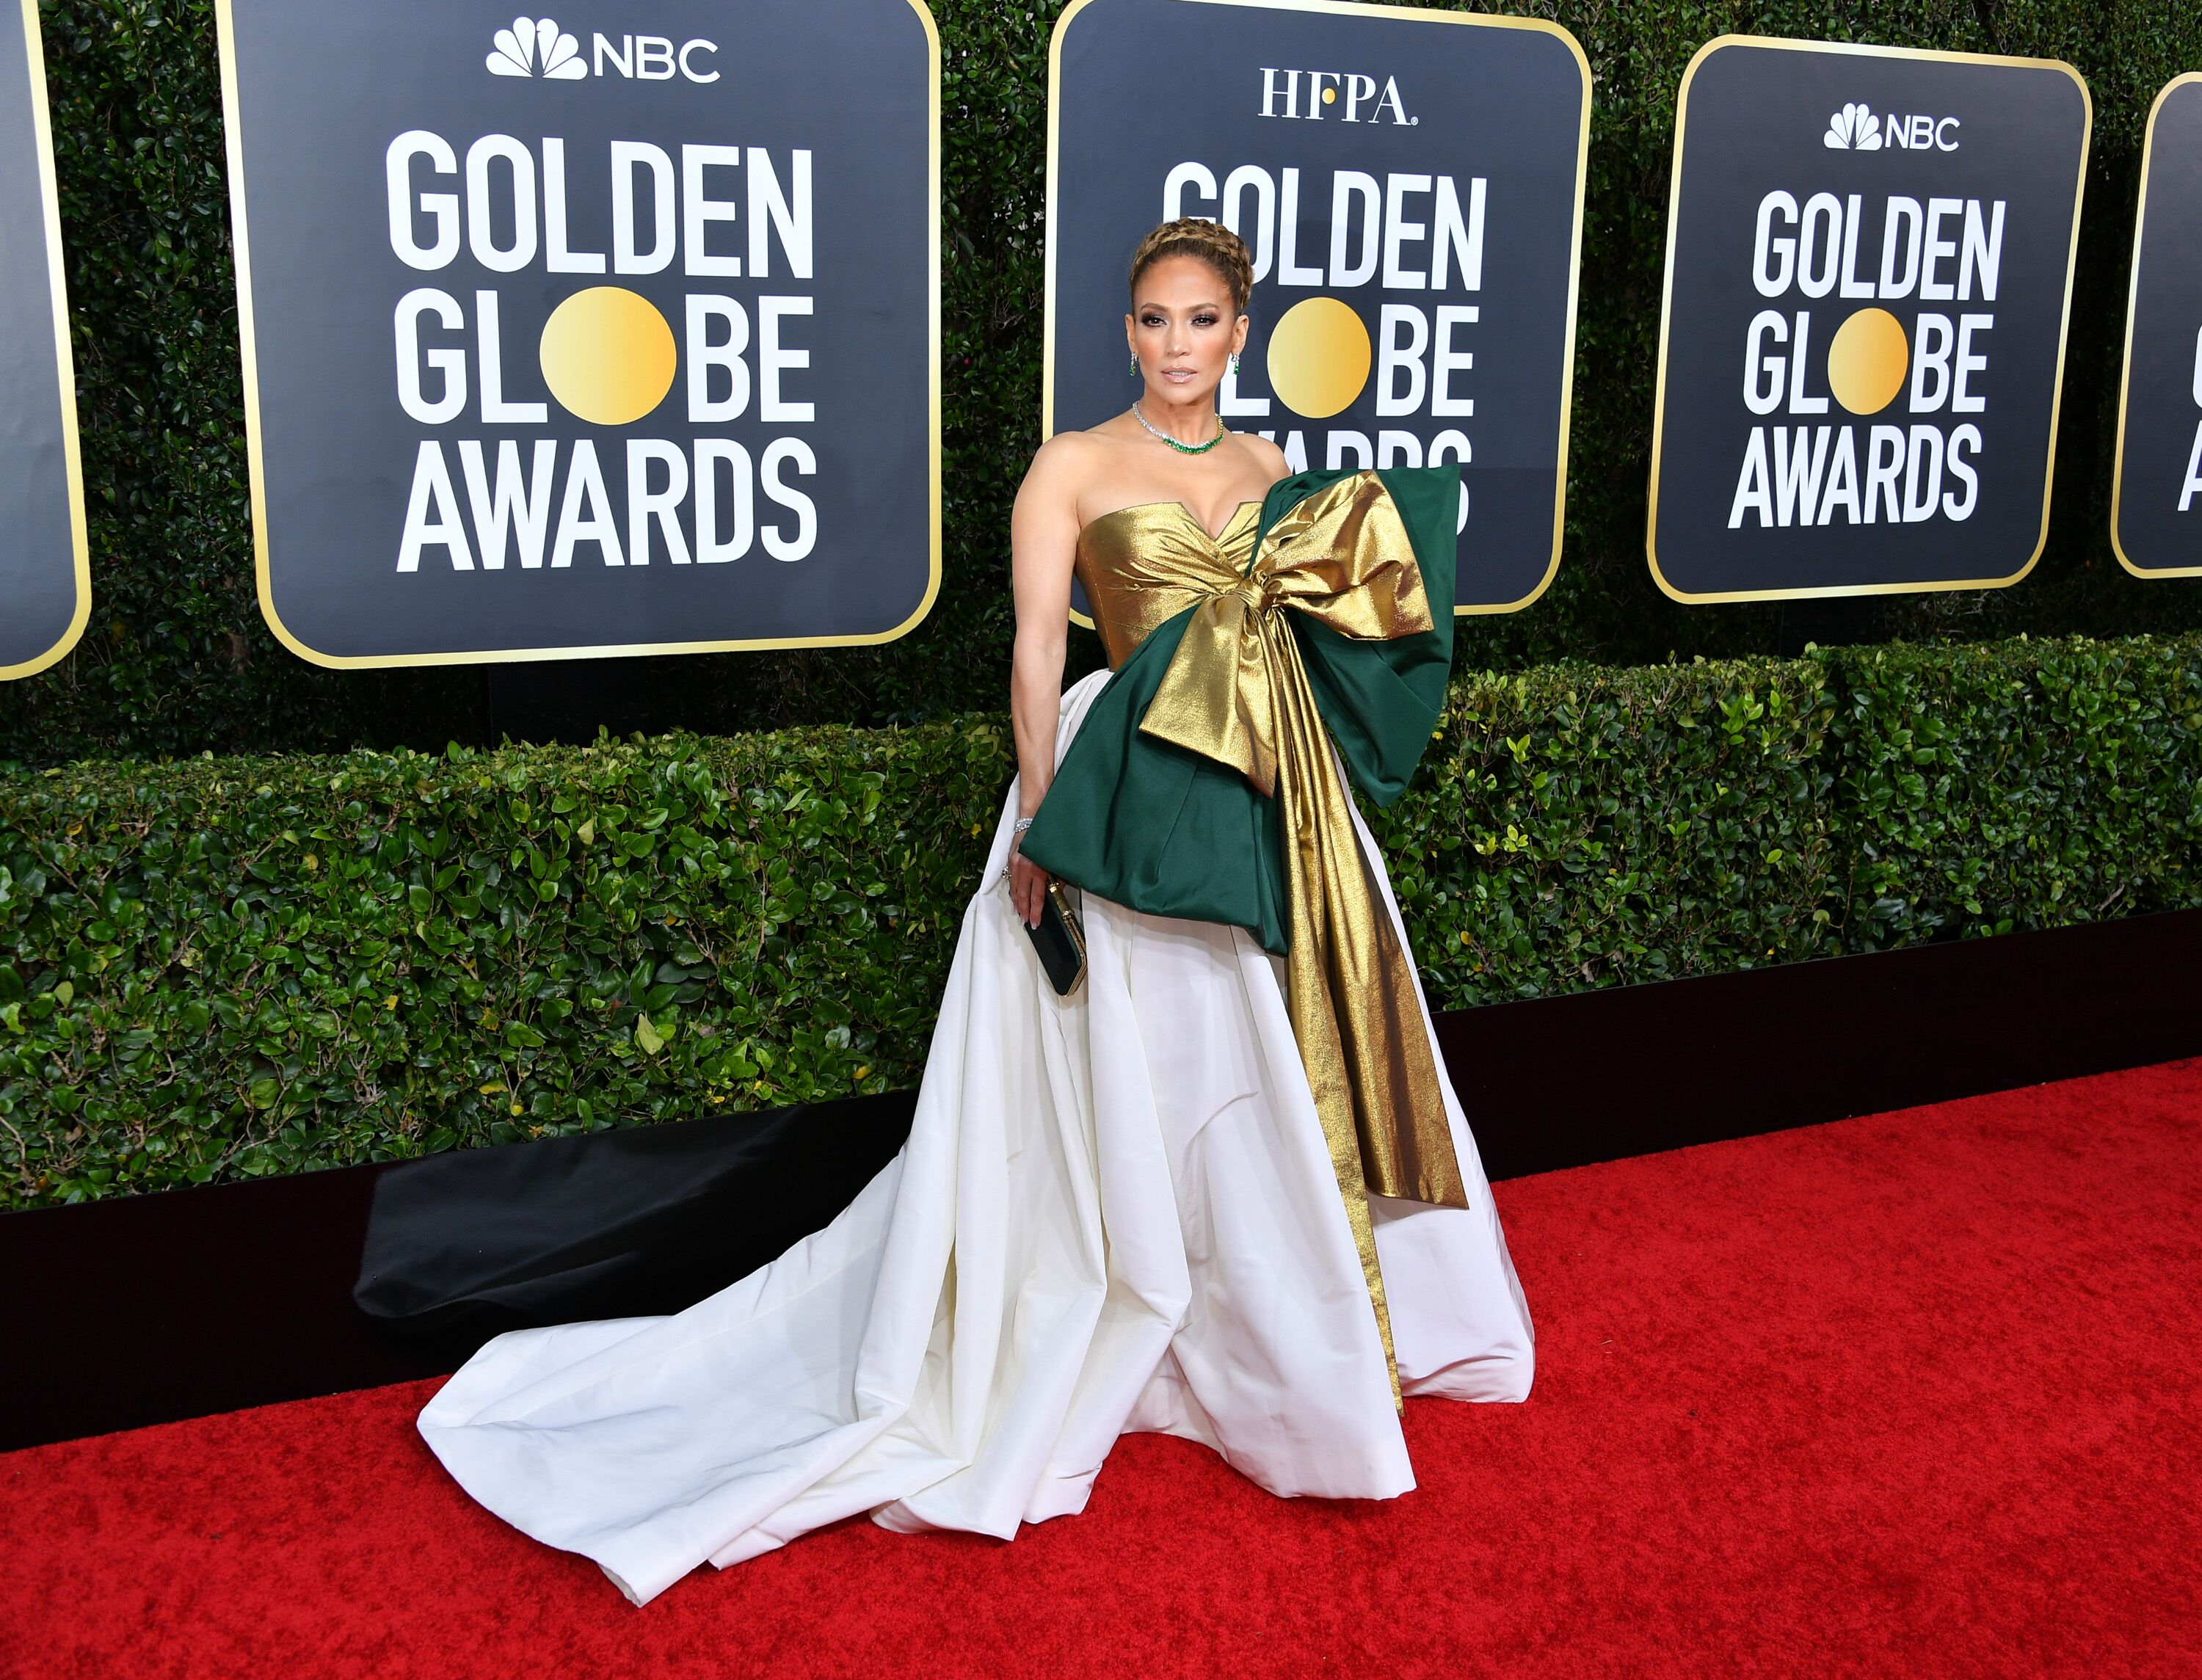 Jennifer Lopez at the 77th Annual Golden Globe Awards on January 05, 2020, in Beverly Hills, California | Photo: George Pimentel/Getty Images